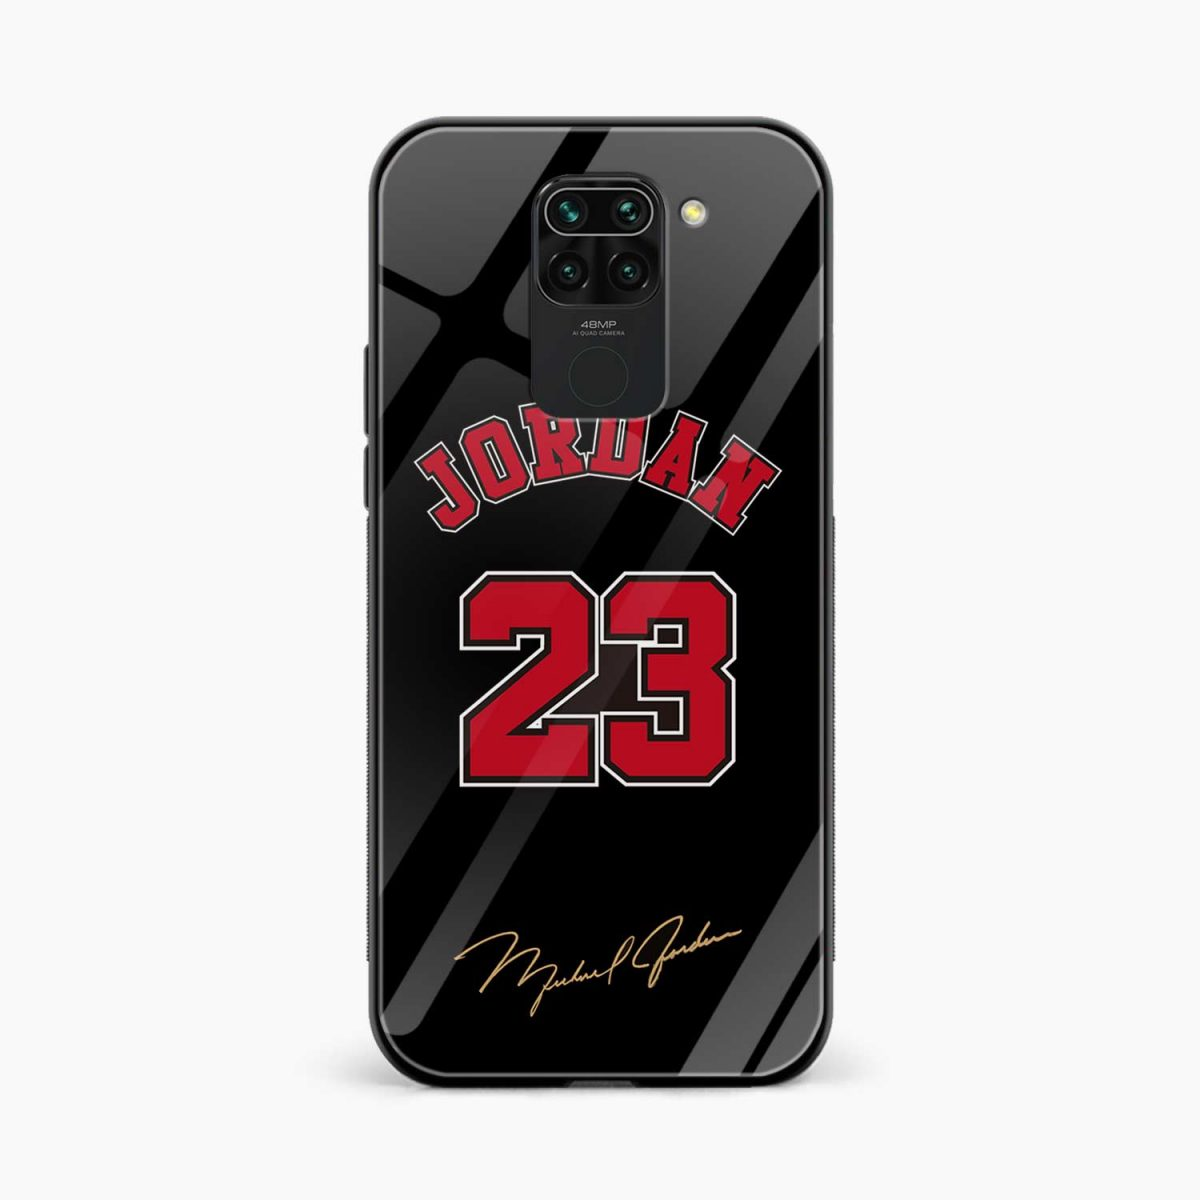 jordan 23 front view redmi note 9 back cover